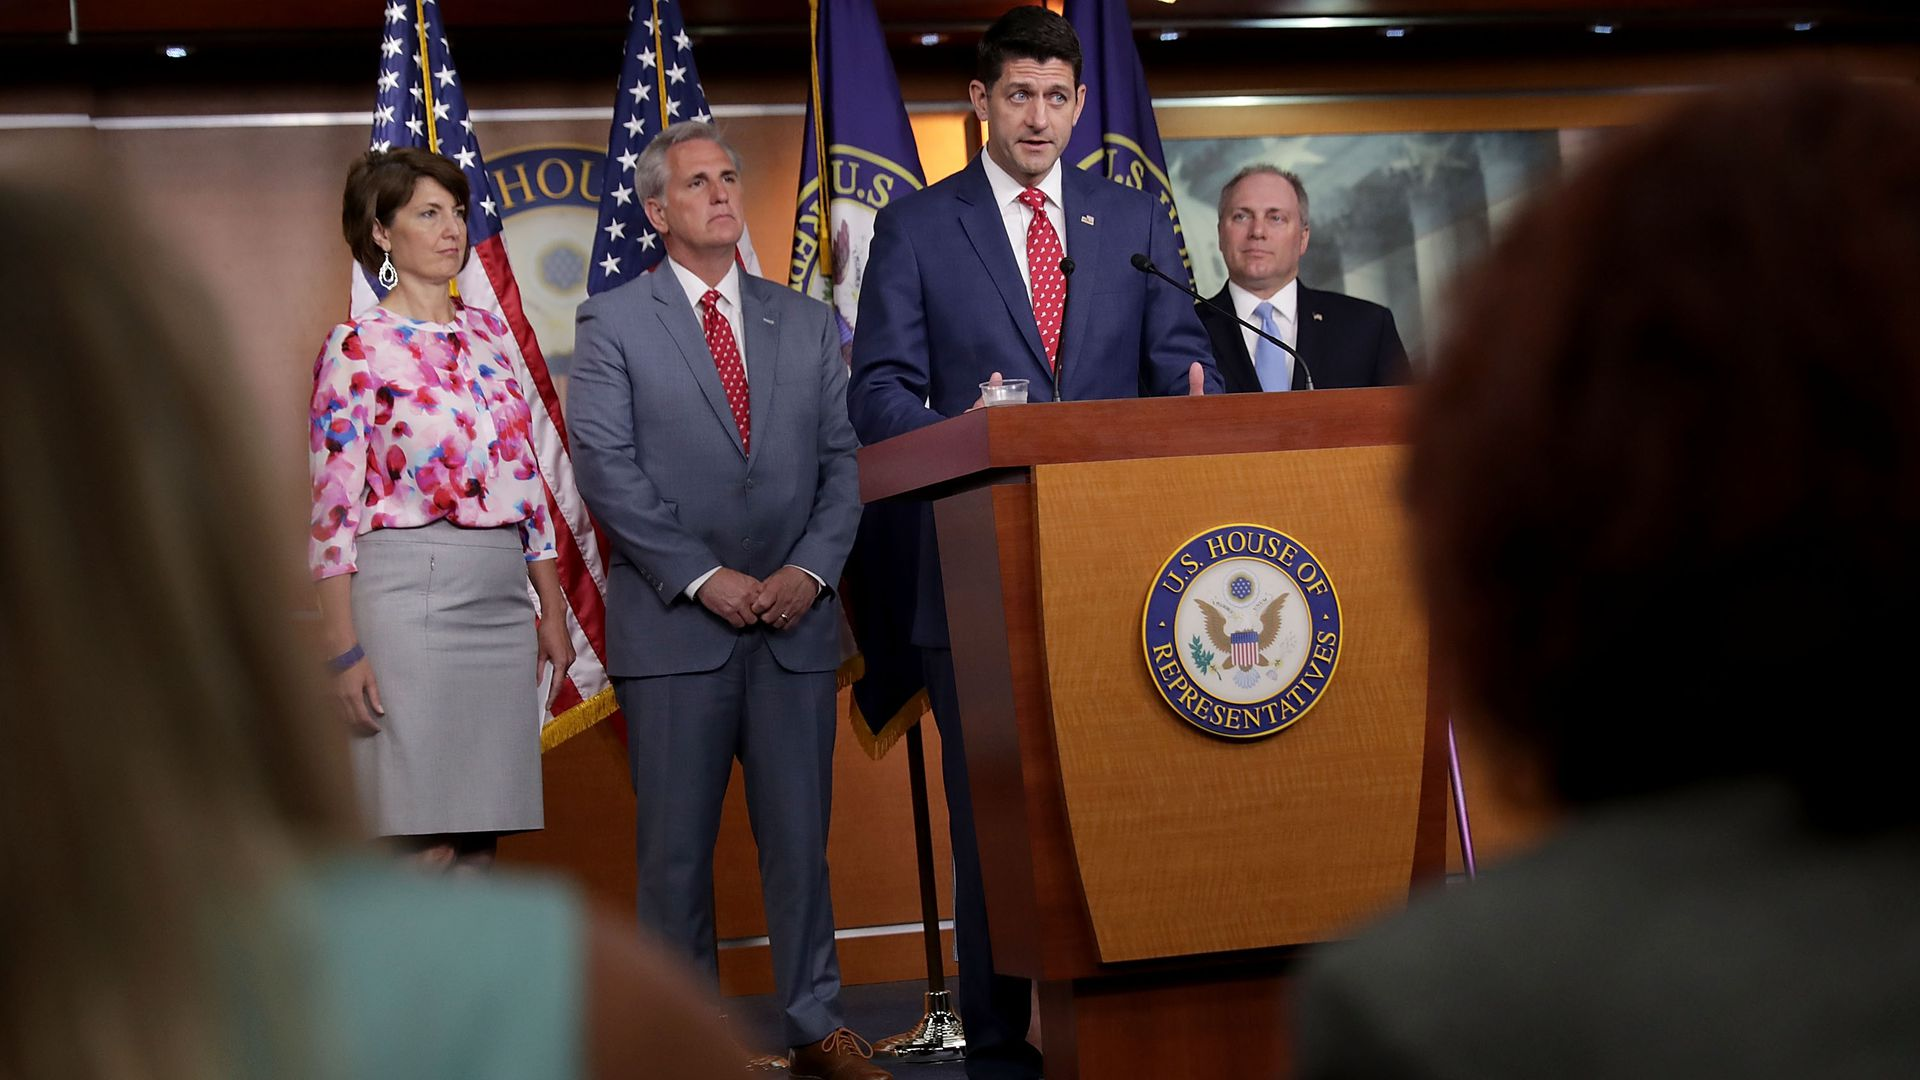 Paul Ryan answering questions at a podium with other GOP House leaders